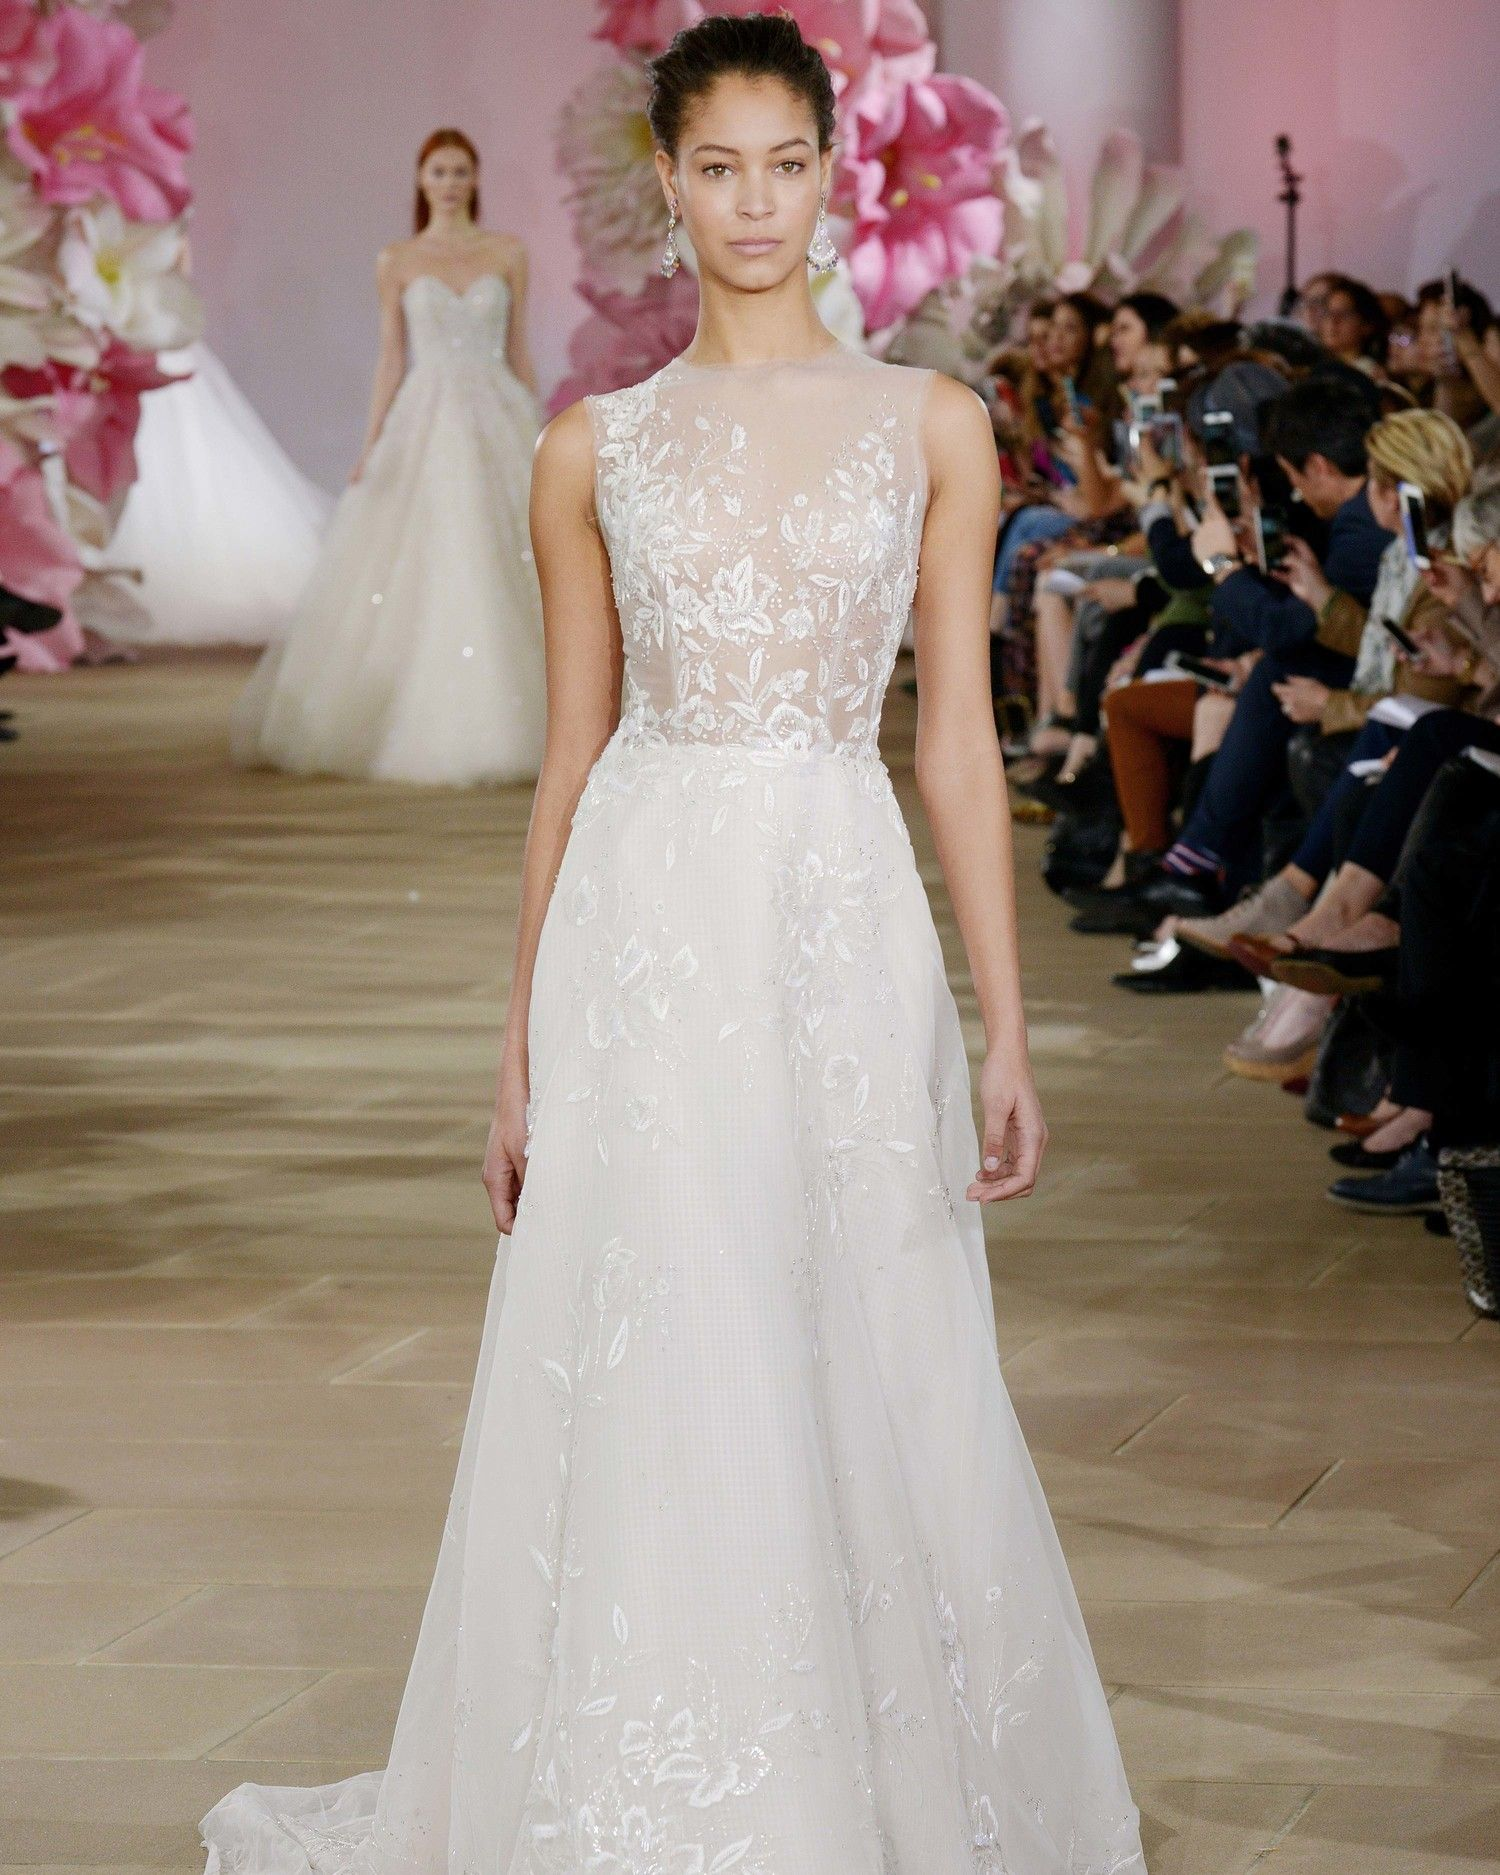 Elite wedding dresses  Simple Wedding Dresses That Are Just Plain Chic  Wedding dress